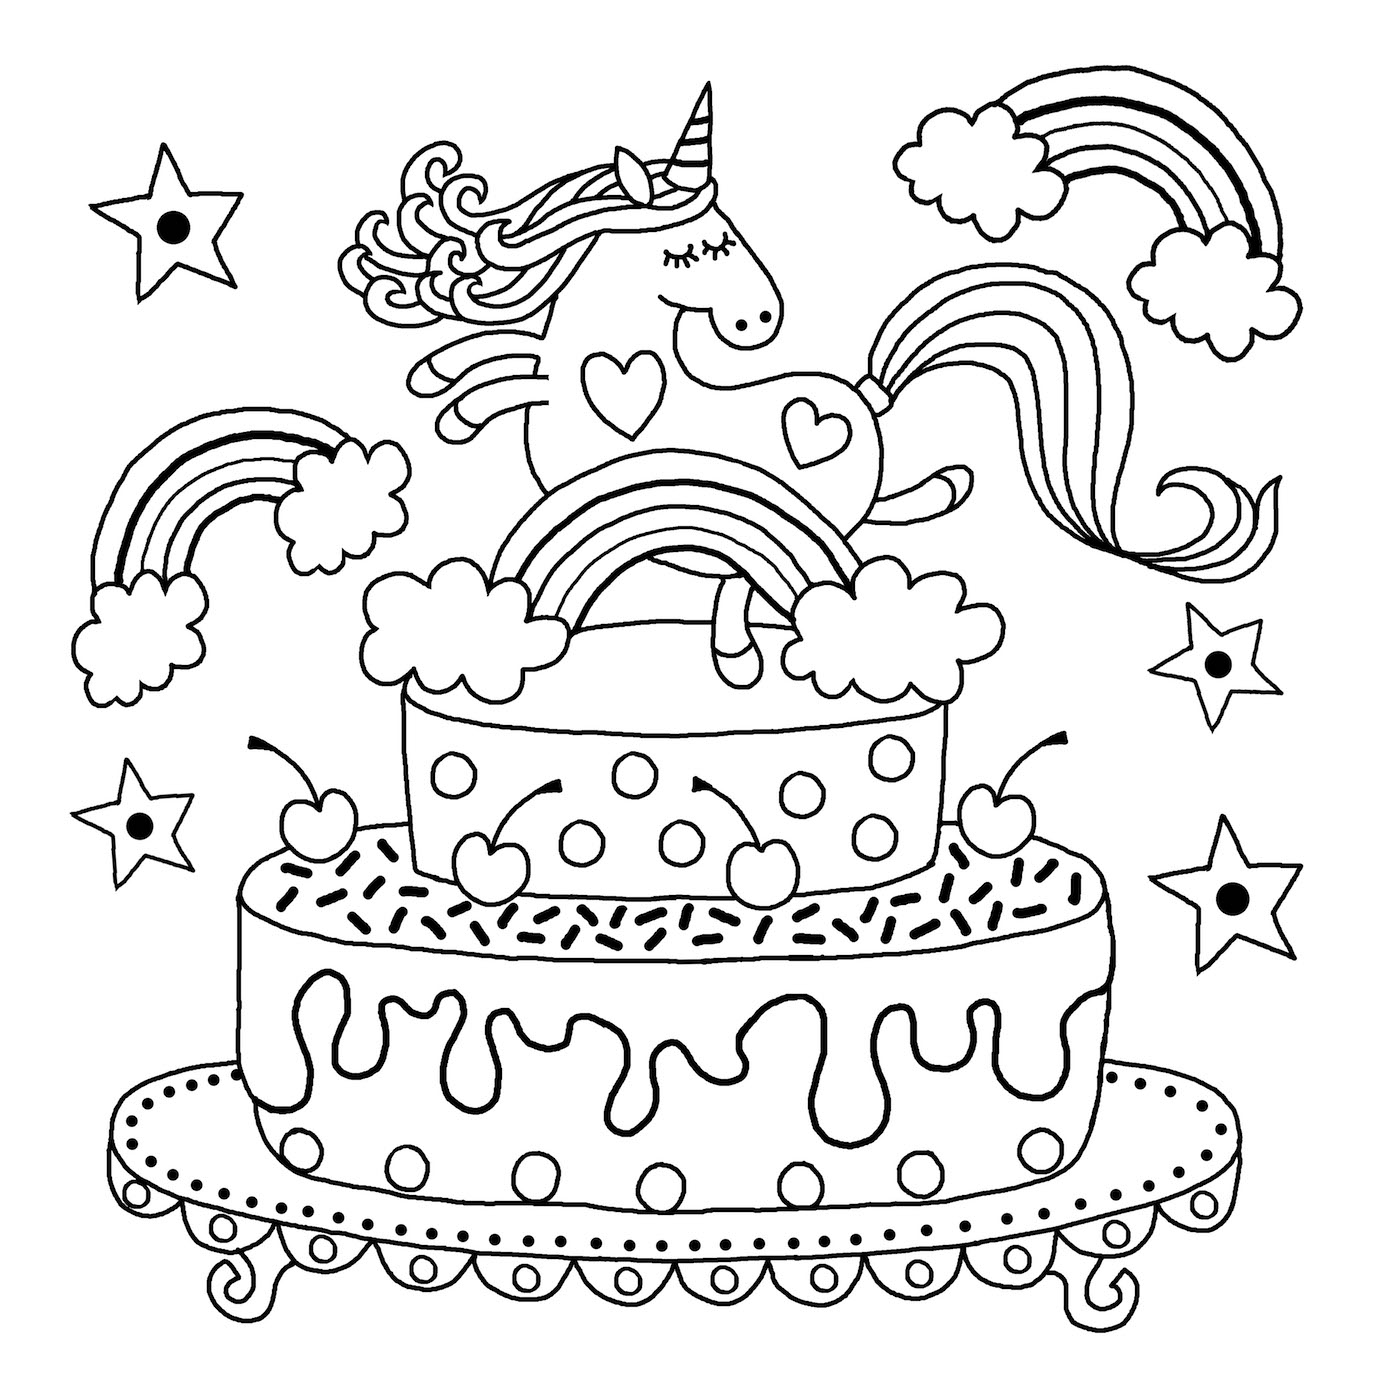 Hilaire image with printable coloring pages unicorn